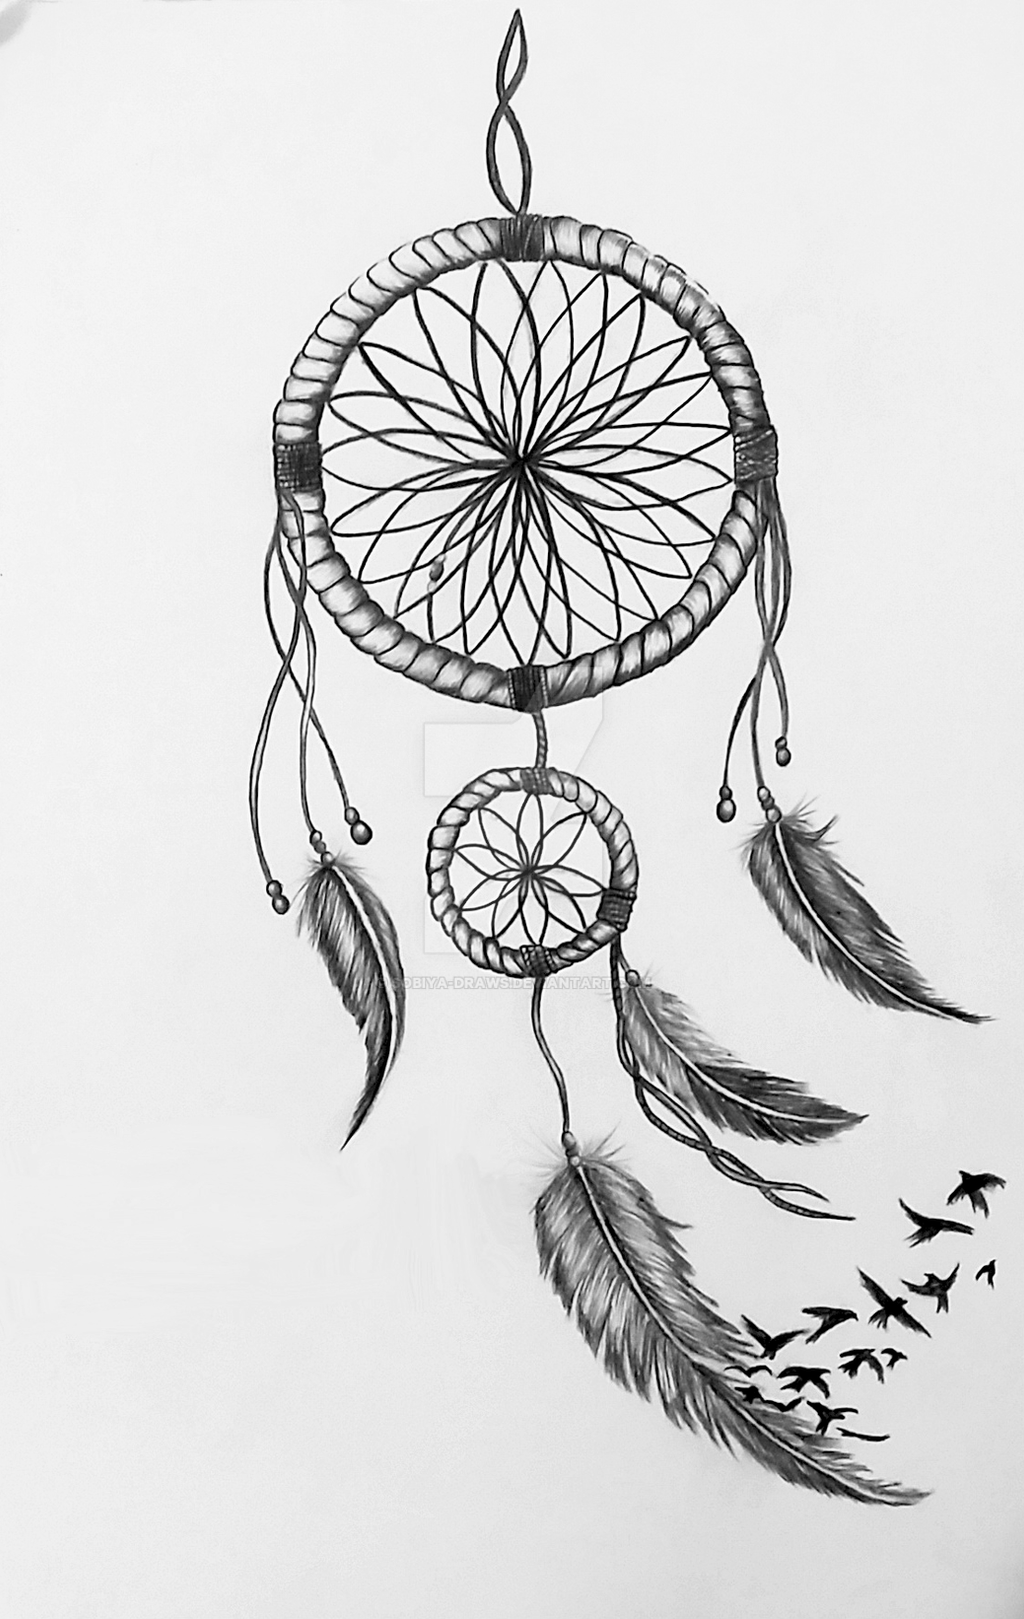 Dreamcatcher Draw Images amp Pictures Becuo